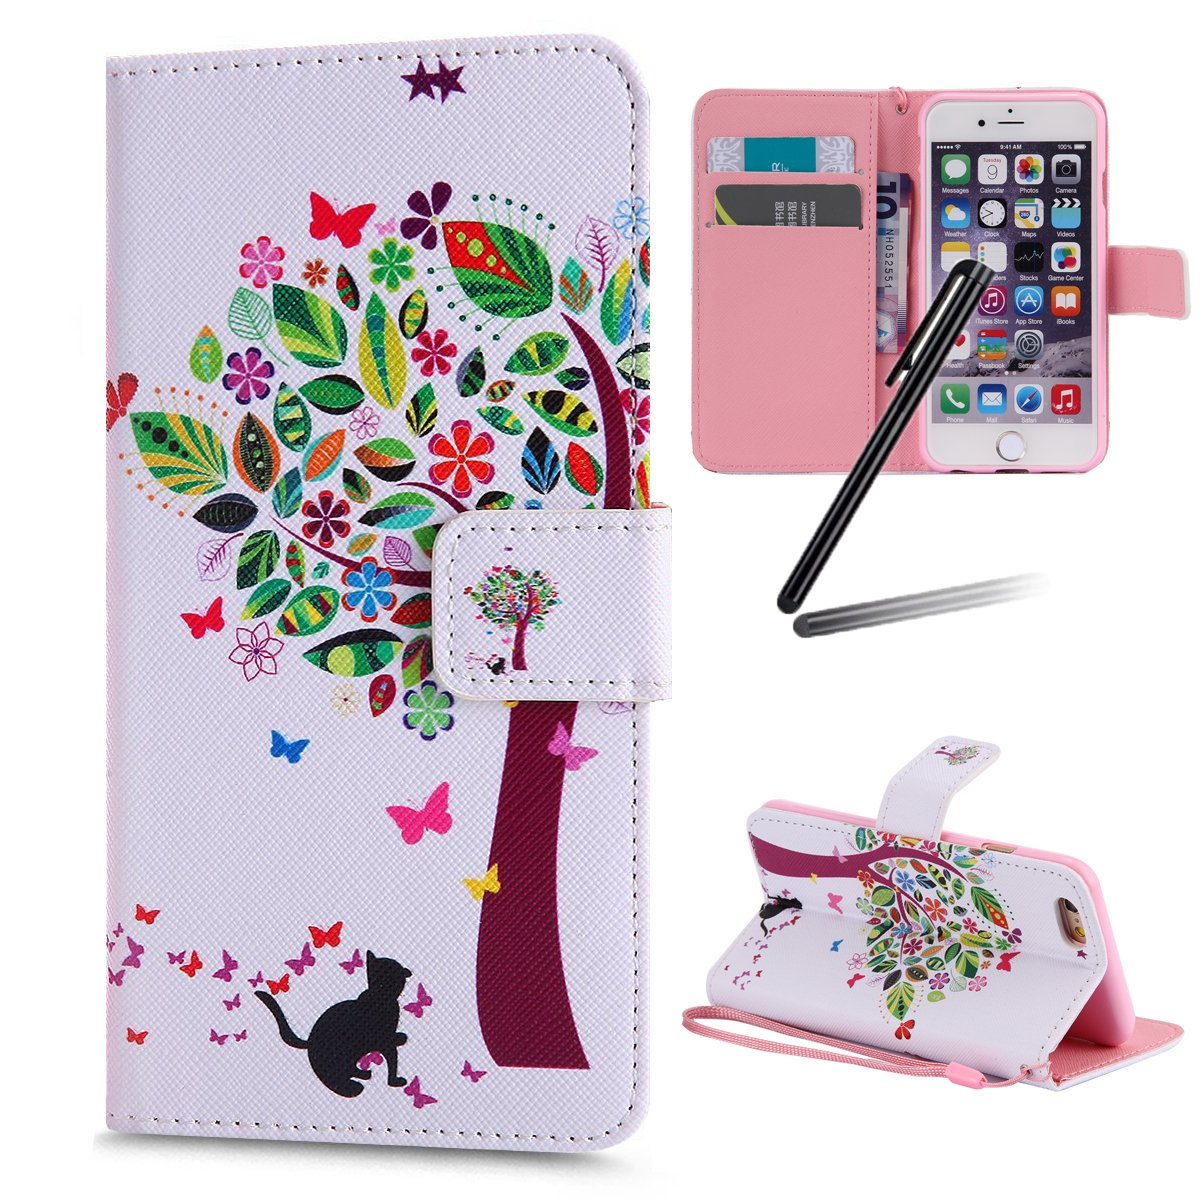 iPhone 6S Stand Case, iPhone 6 Wallet Case, iPhone 6S Flip Case, iPhone 6 PU Case Girl, SKYMARS Beautiful Art Painted Pattern PU Leather Flip Kickstand Cards Slot Wallet Magnetic Closure Protection Book Style Case for iPhone 6 / 6S Pink Flower Tree